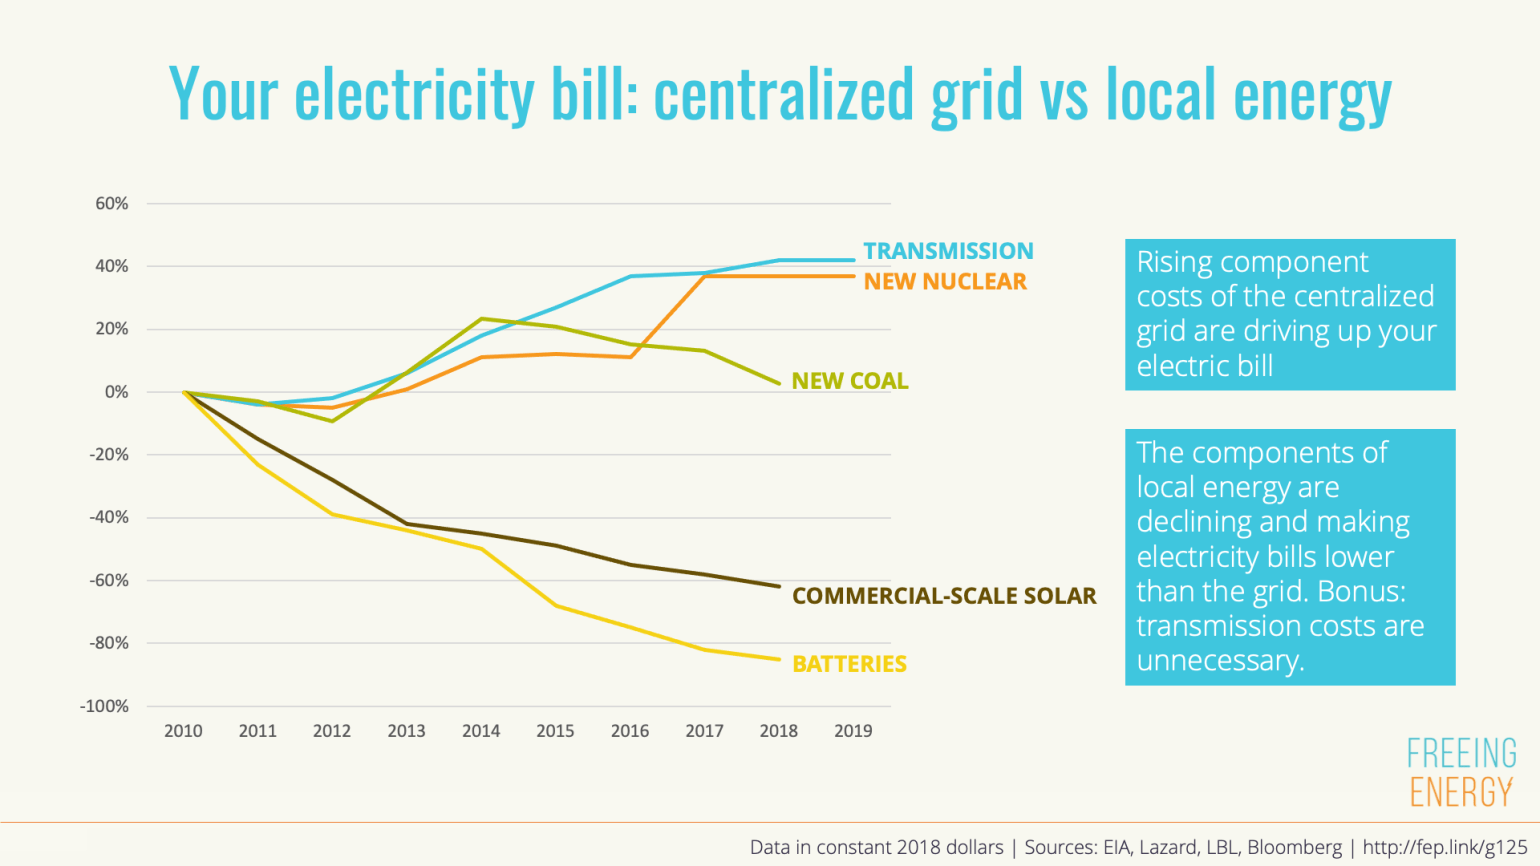 graph showing that local energy is cheaper than the grid, and the gap is widening